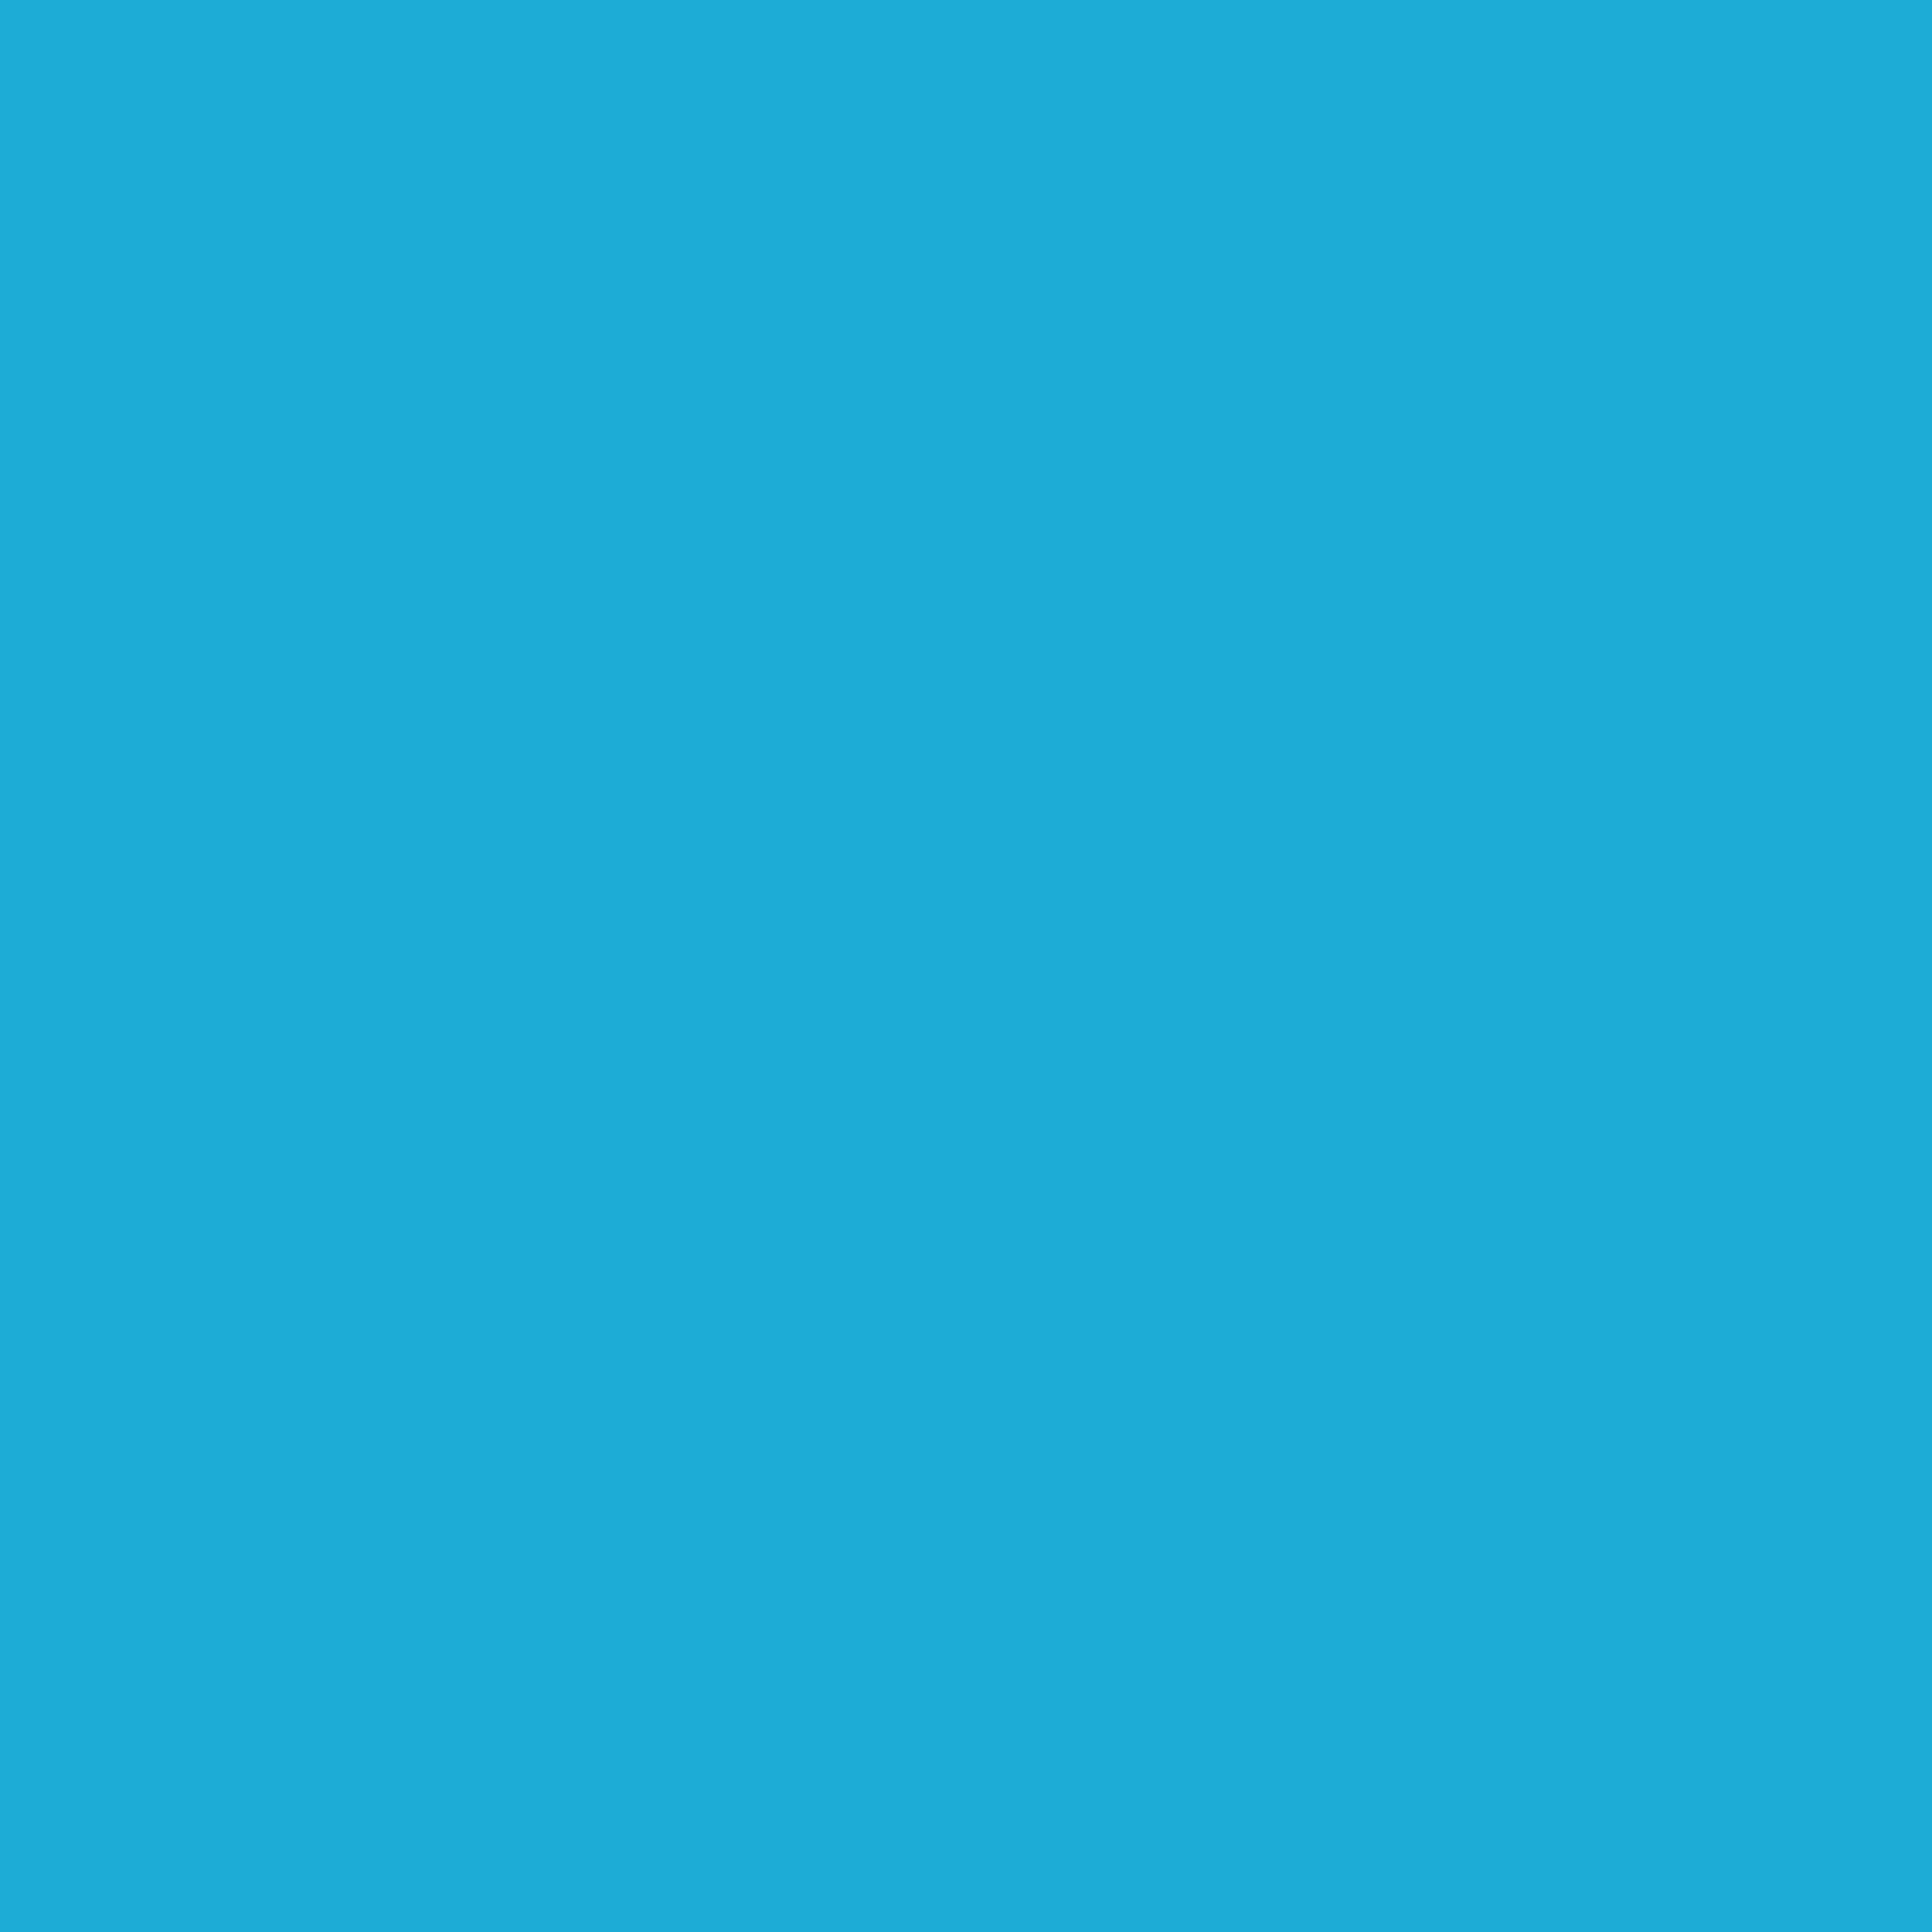 3600x3600 Bright Cerulean Solid Color Background